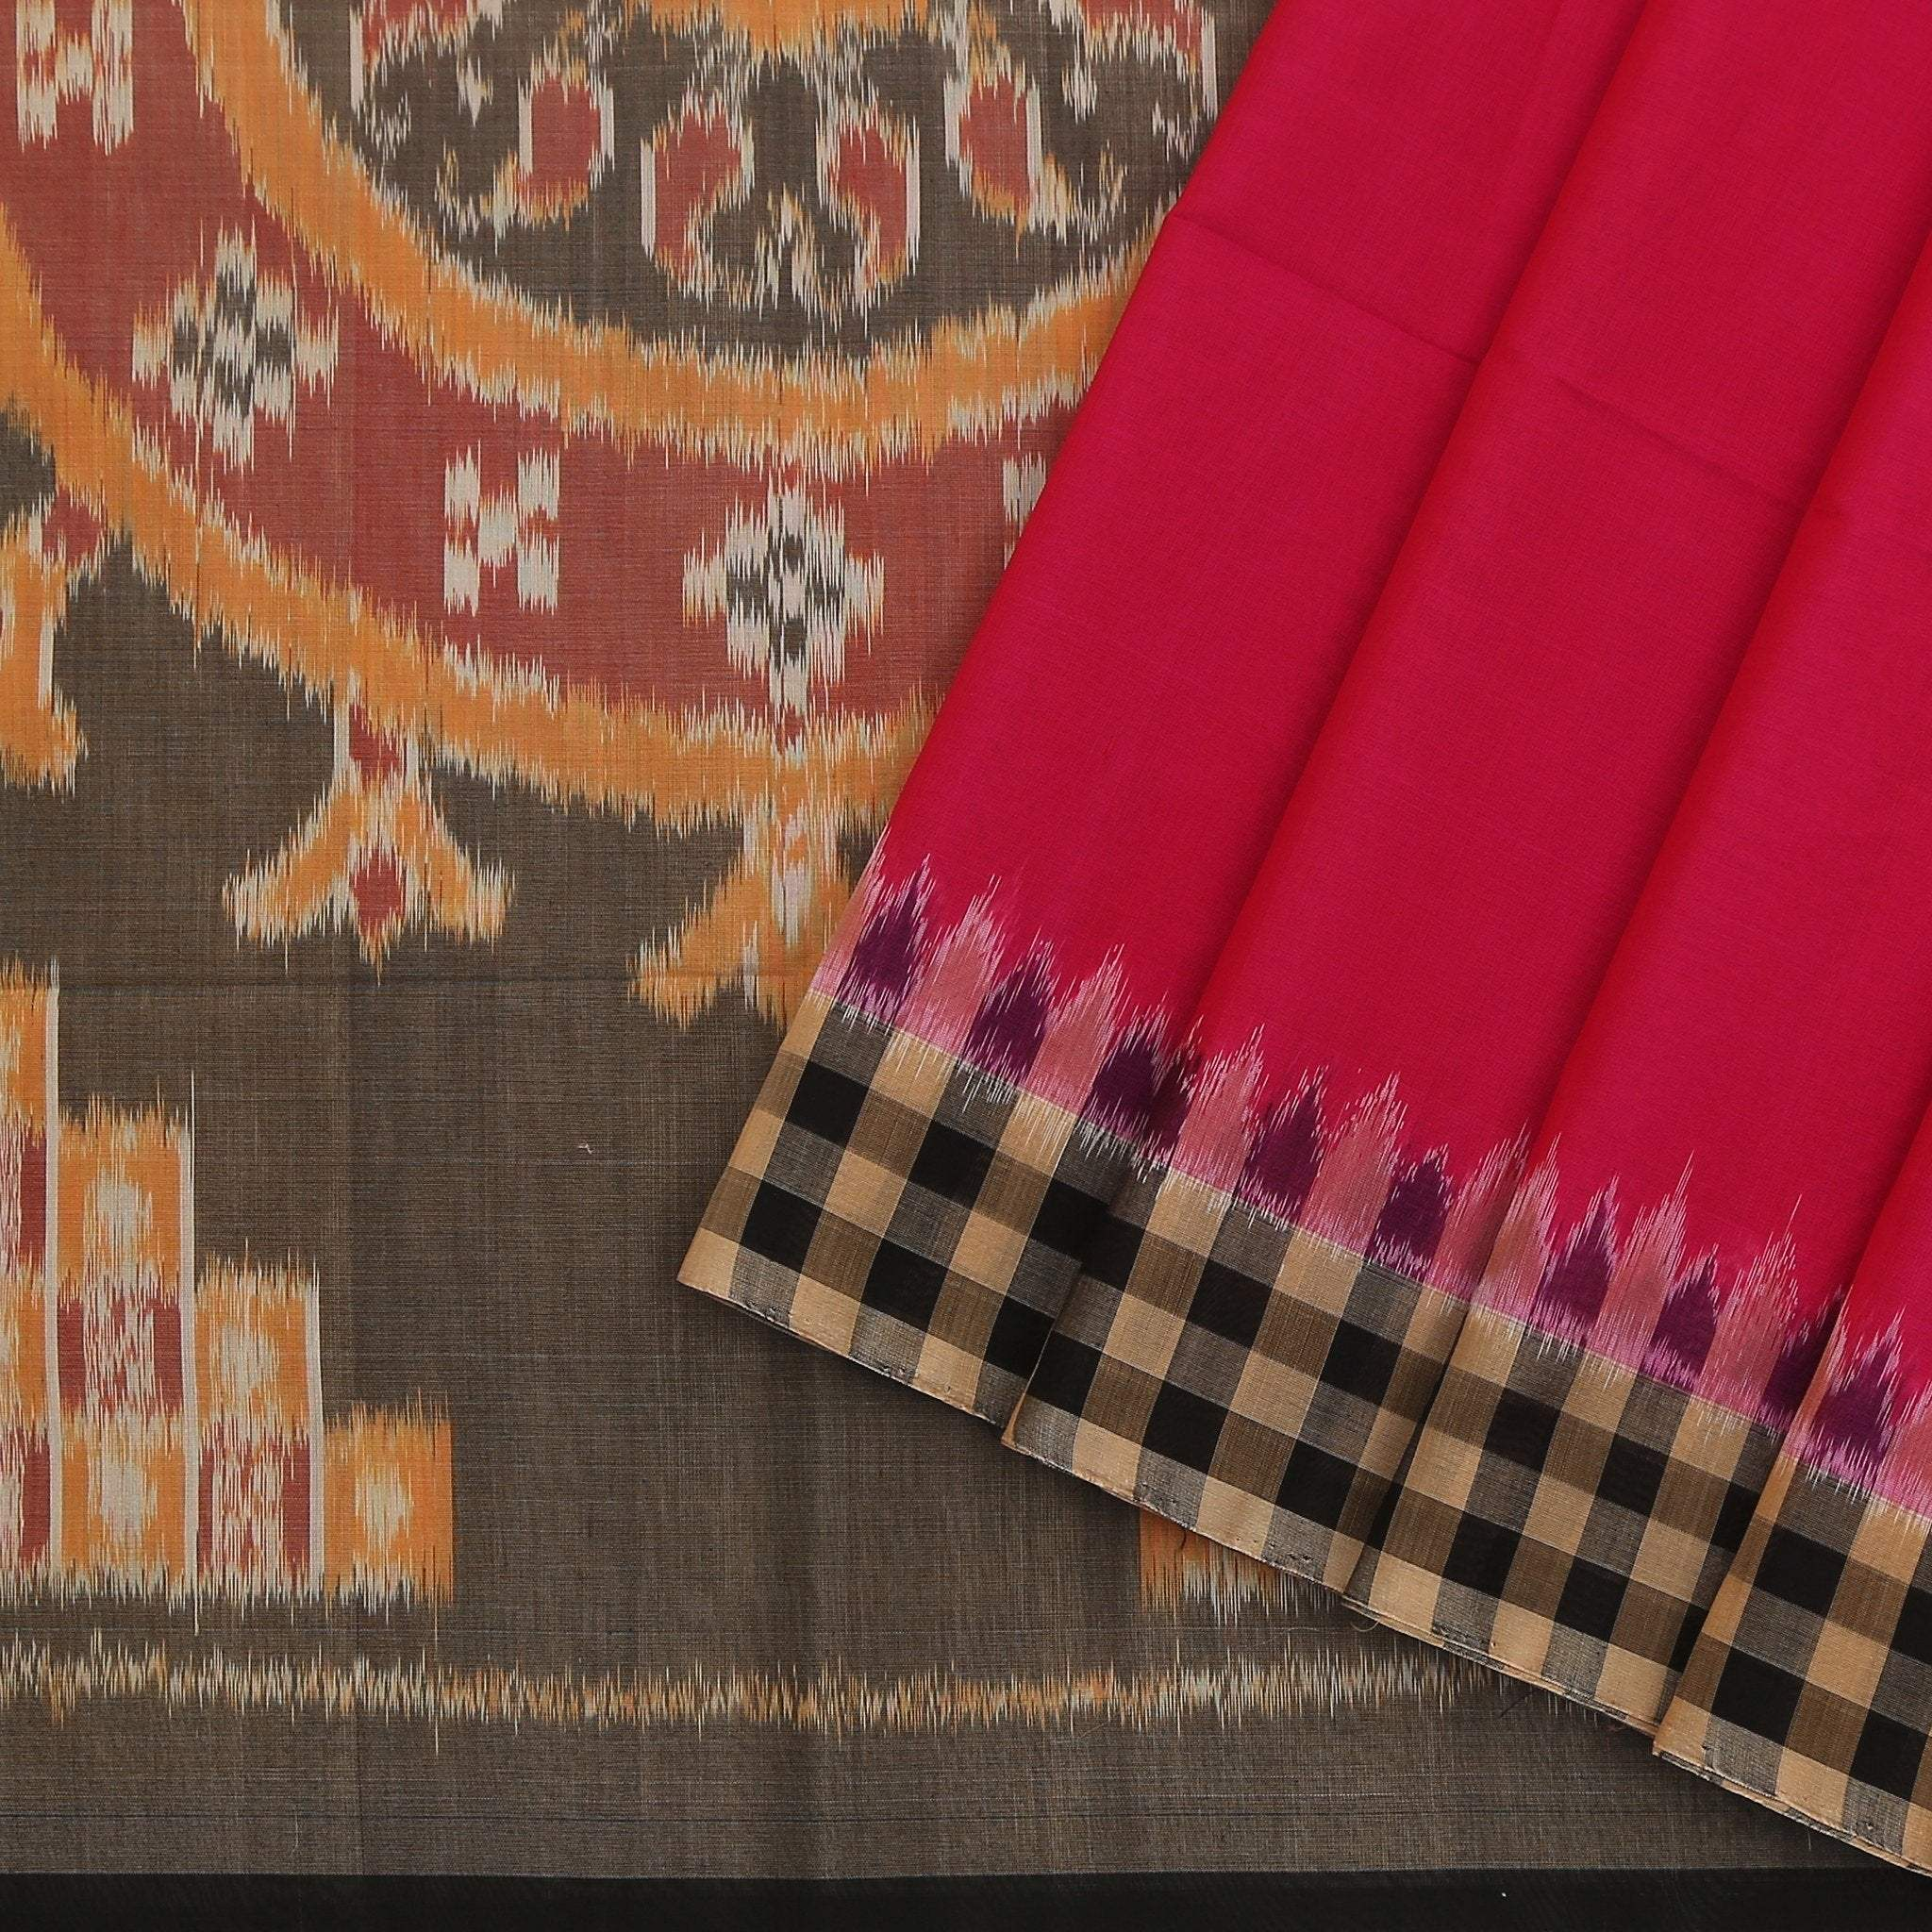 Magenta-Pink-Cotton-Ikkat-Saree-with-checkered-border.